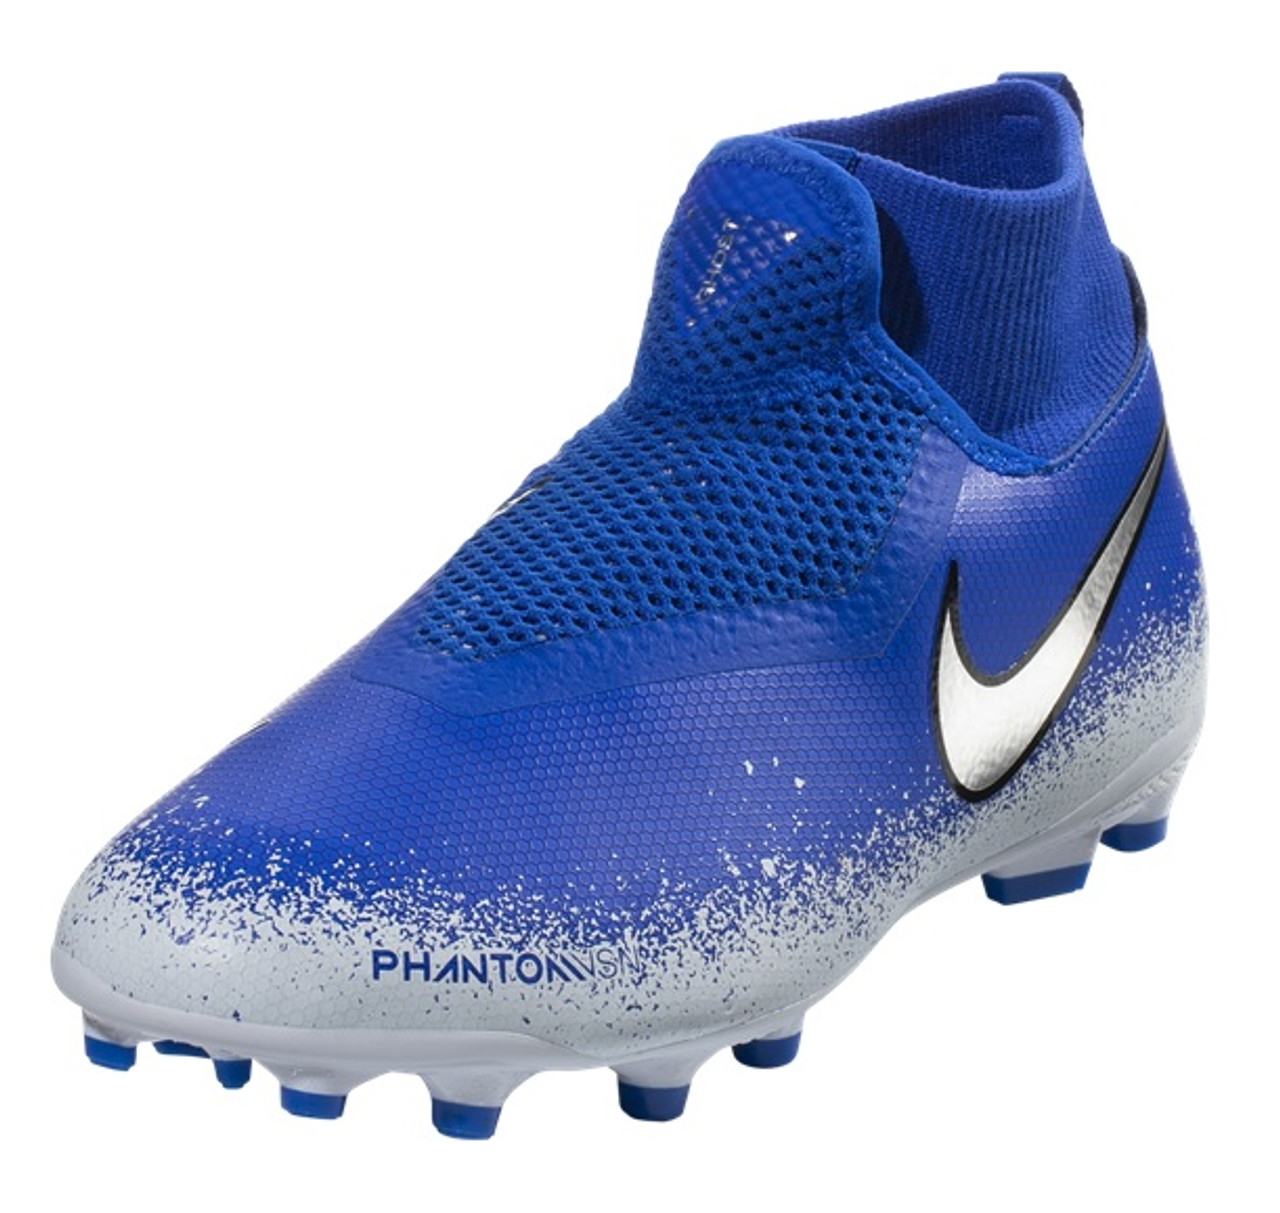 7843874d1eb Nike Jr. Phantom Vision Academy Dynamic Fit MG - Racer Blue Chrome White  (041919) - ohp soccer